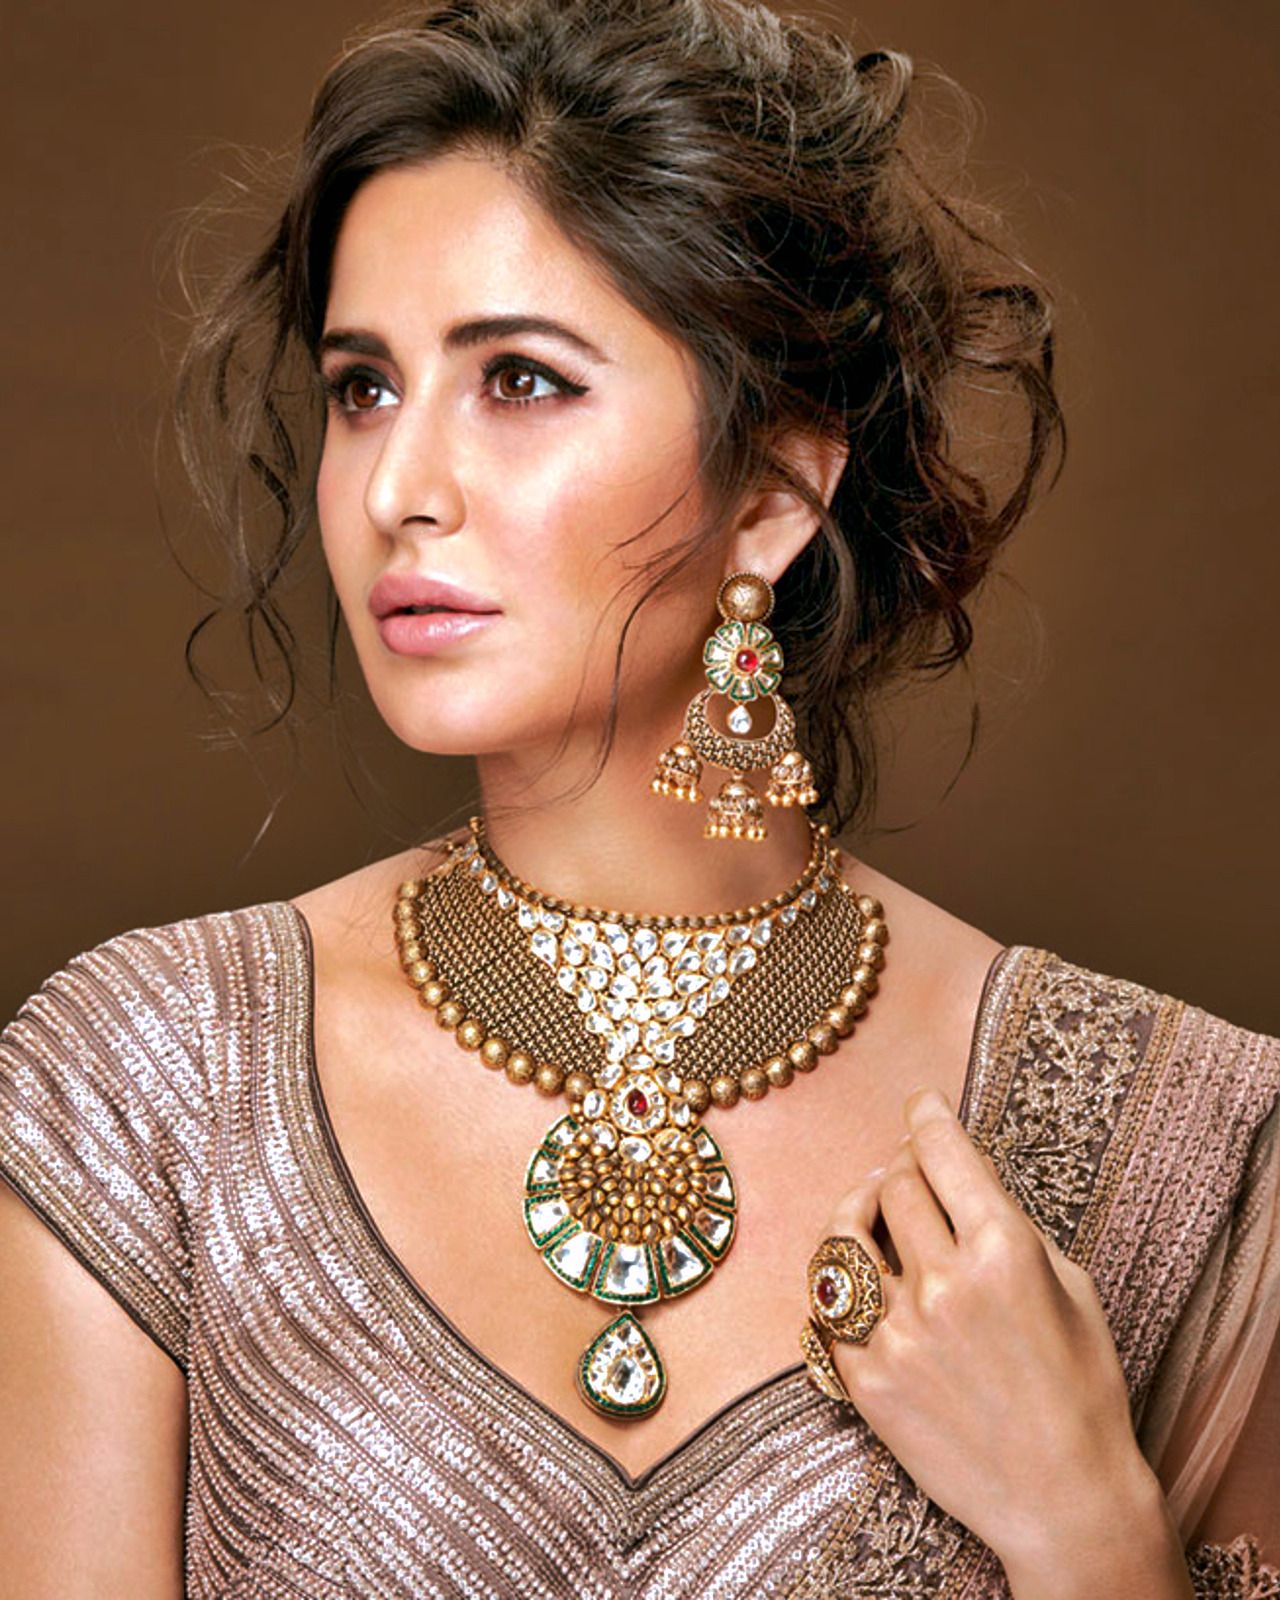 Ultimategallery Katrina Kaif Tumblr Katrina Kaif Photo Katrina Kaif Wallpapers Bollywood Jewelry